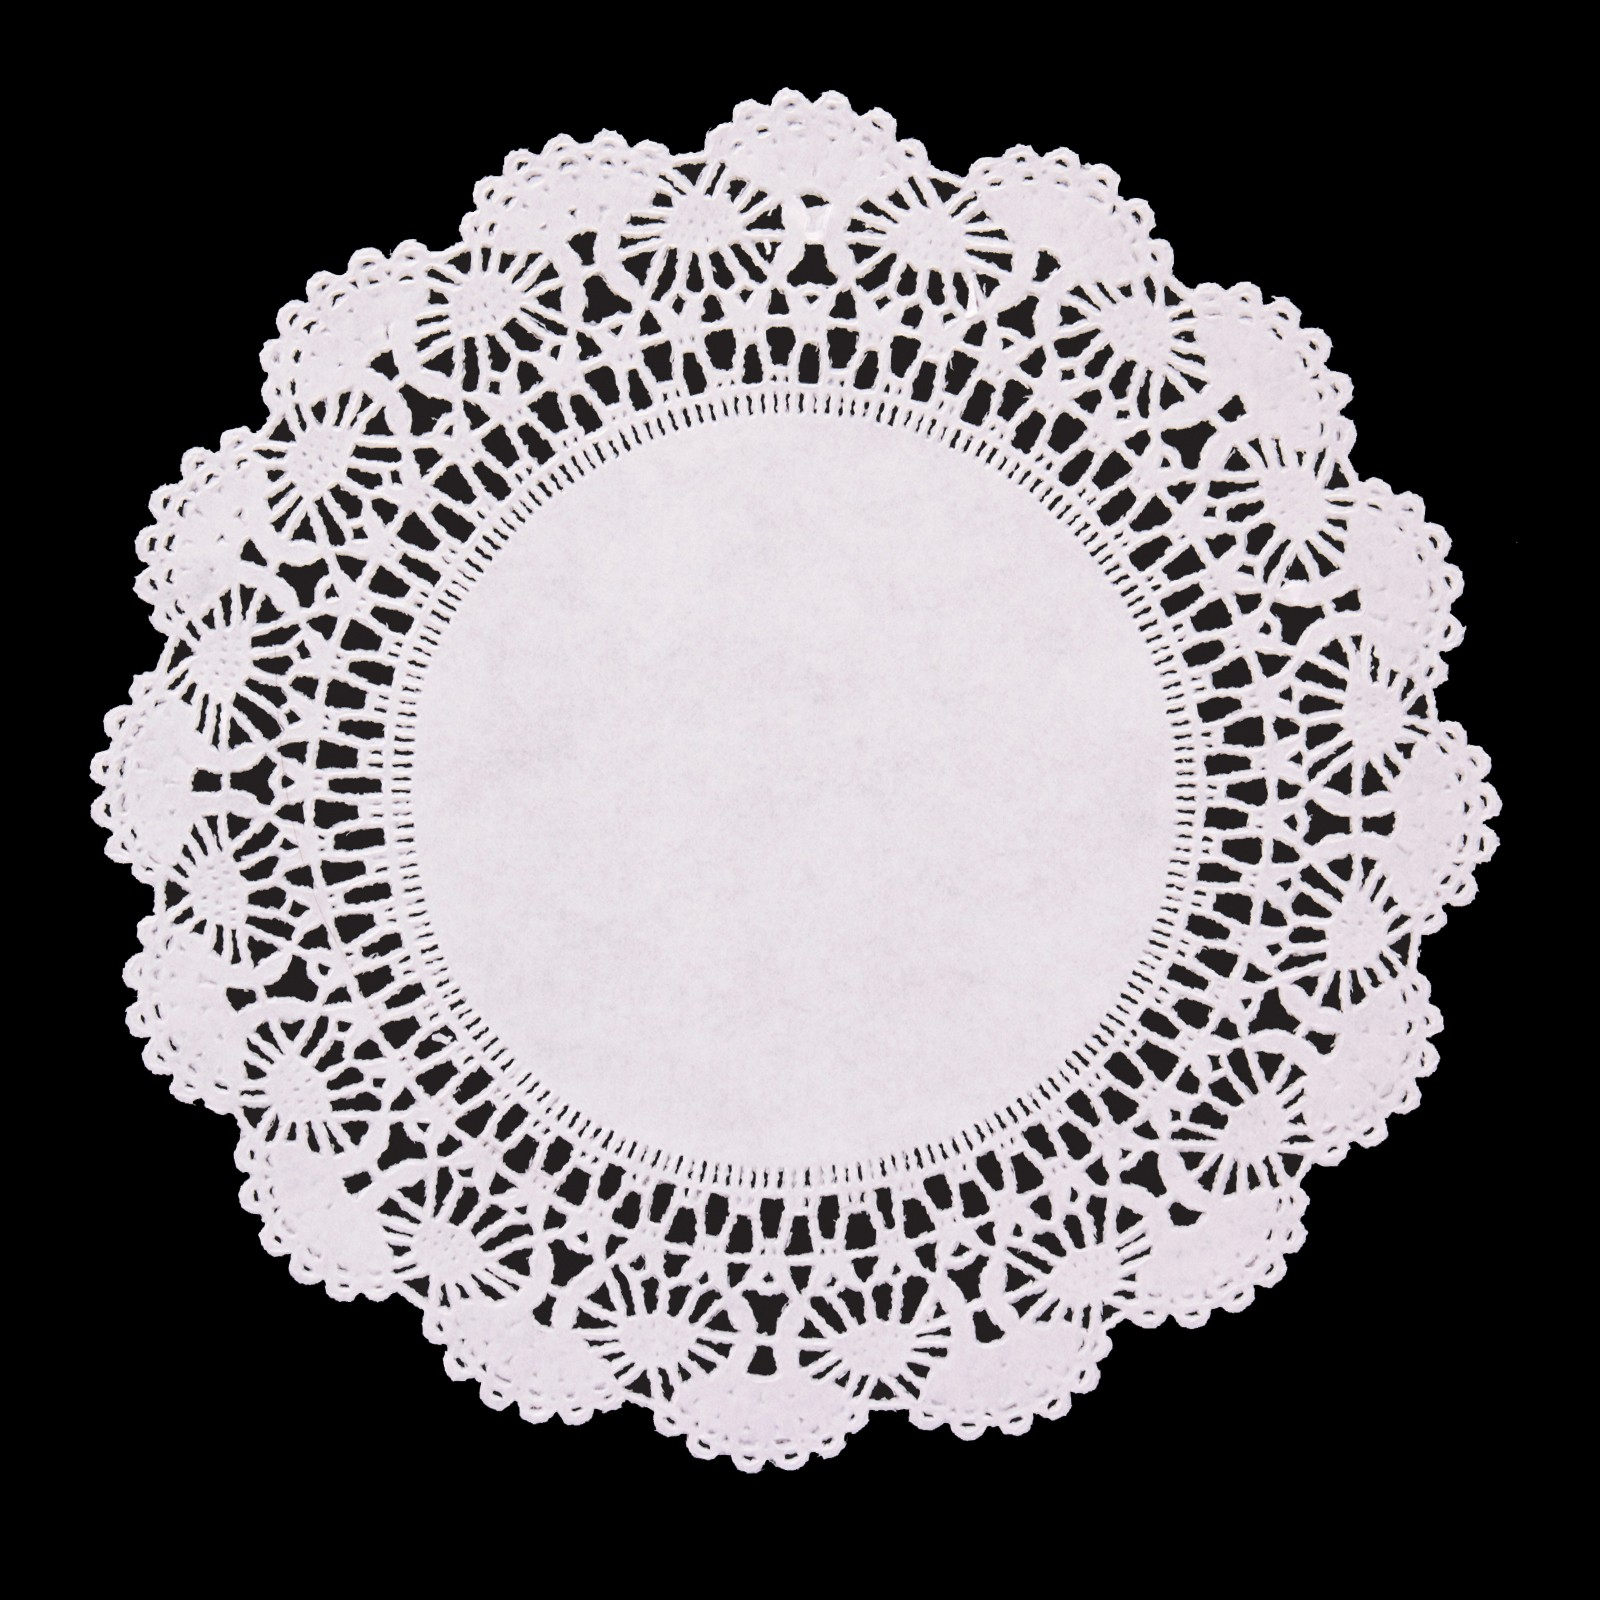 paper doily Paper doilies found in: multipack round paper doilies in assorted sizes, 32-ct packs, delicately elegant, yet fully disposable paper doilies are a.